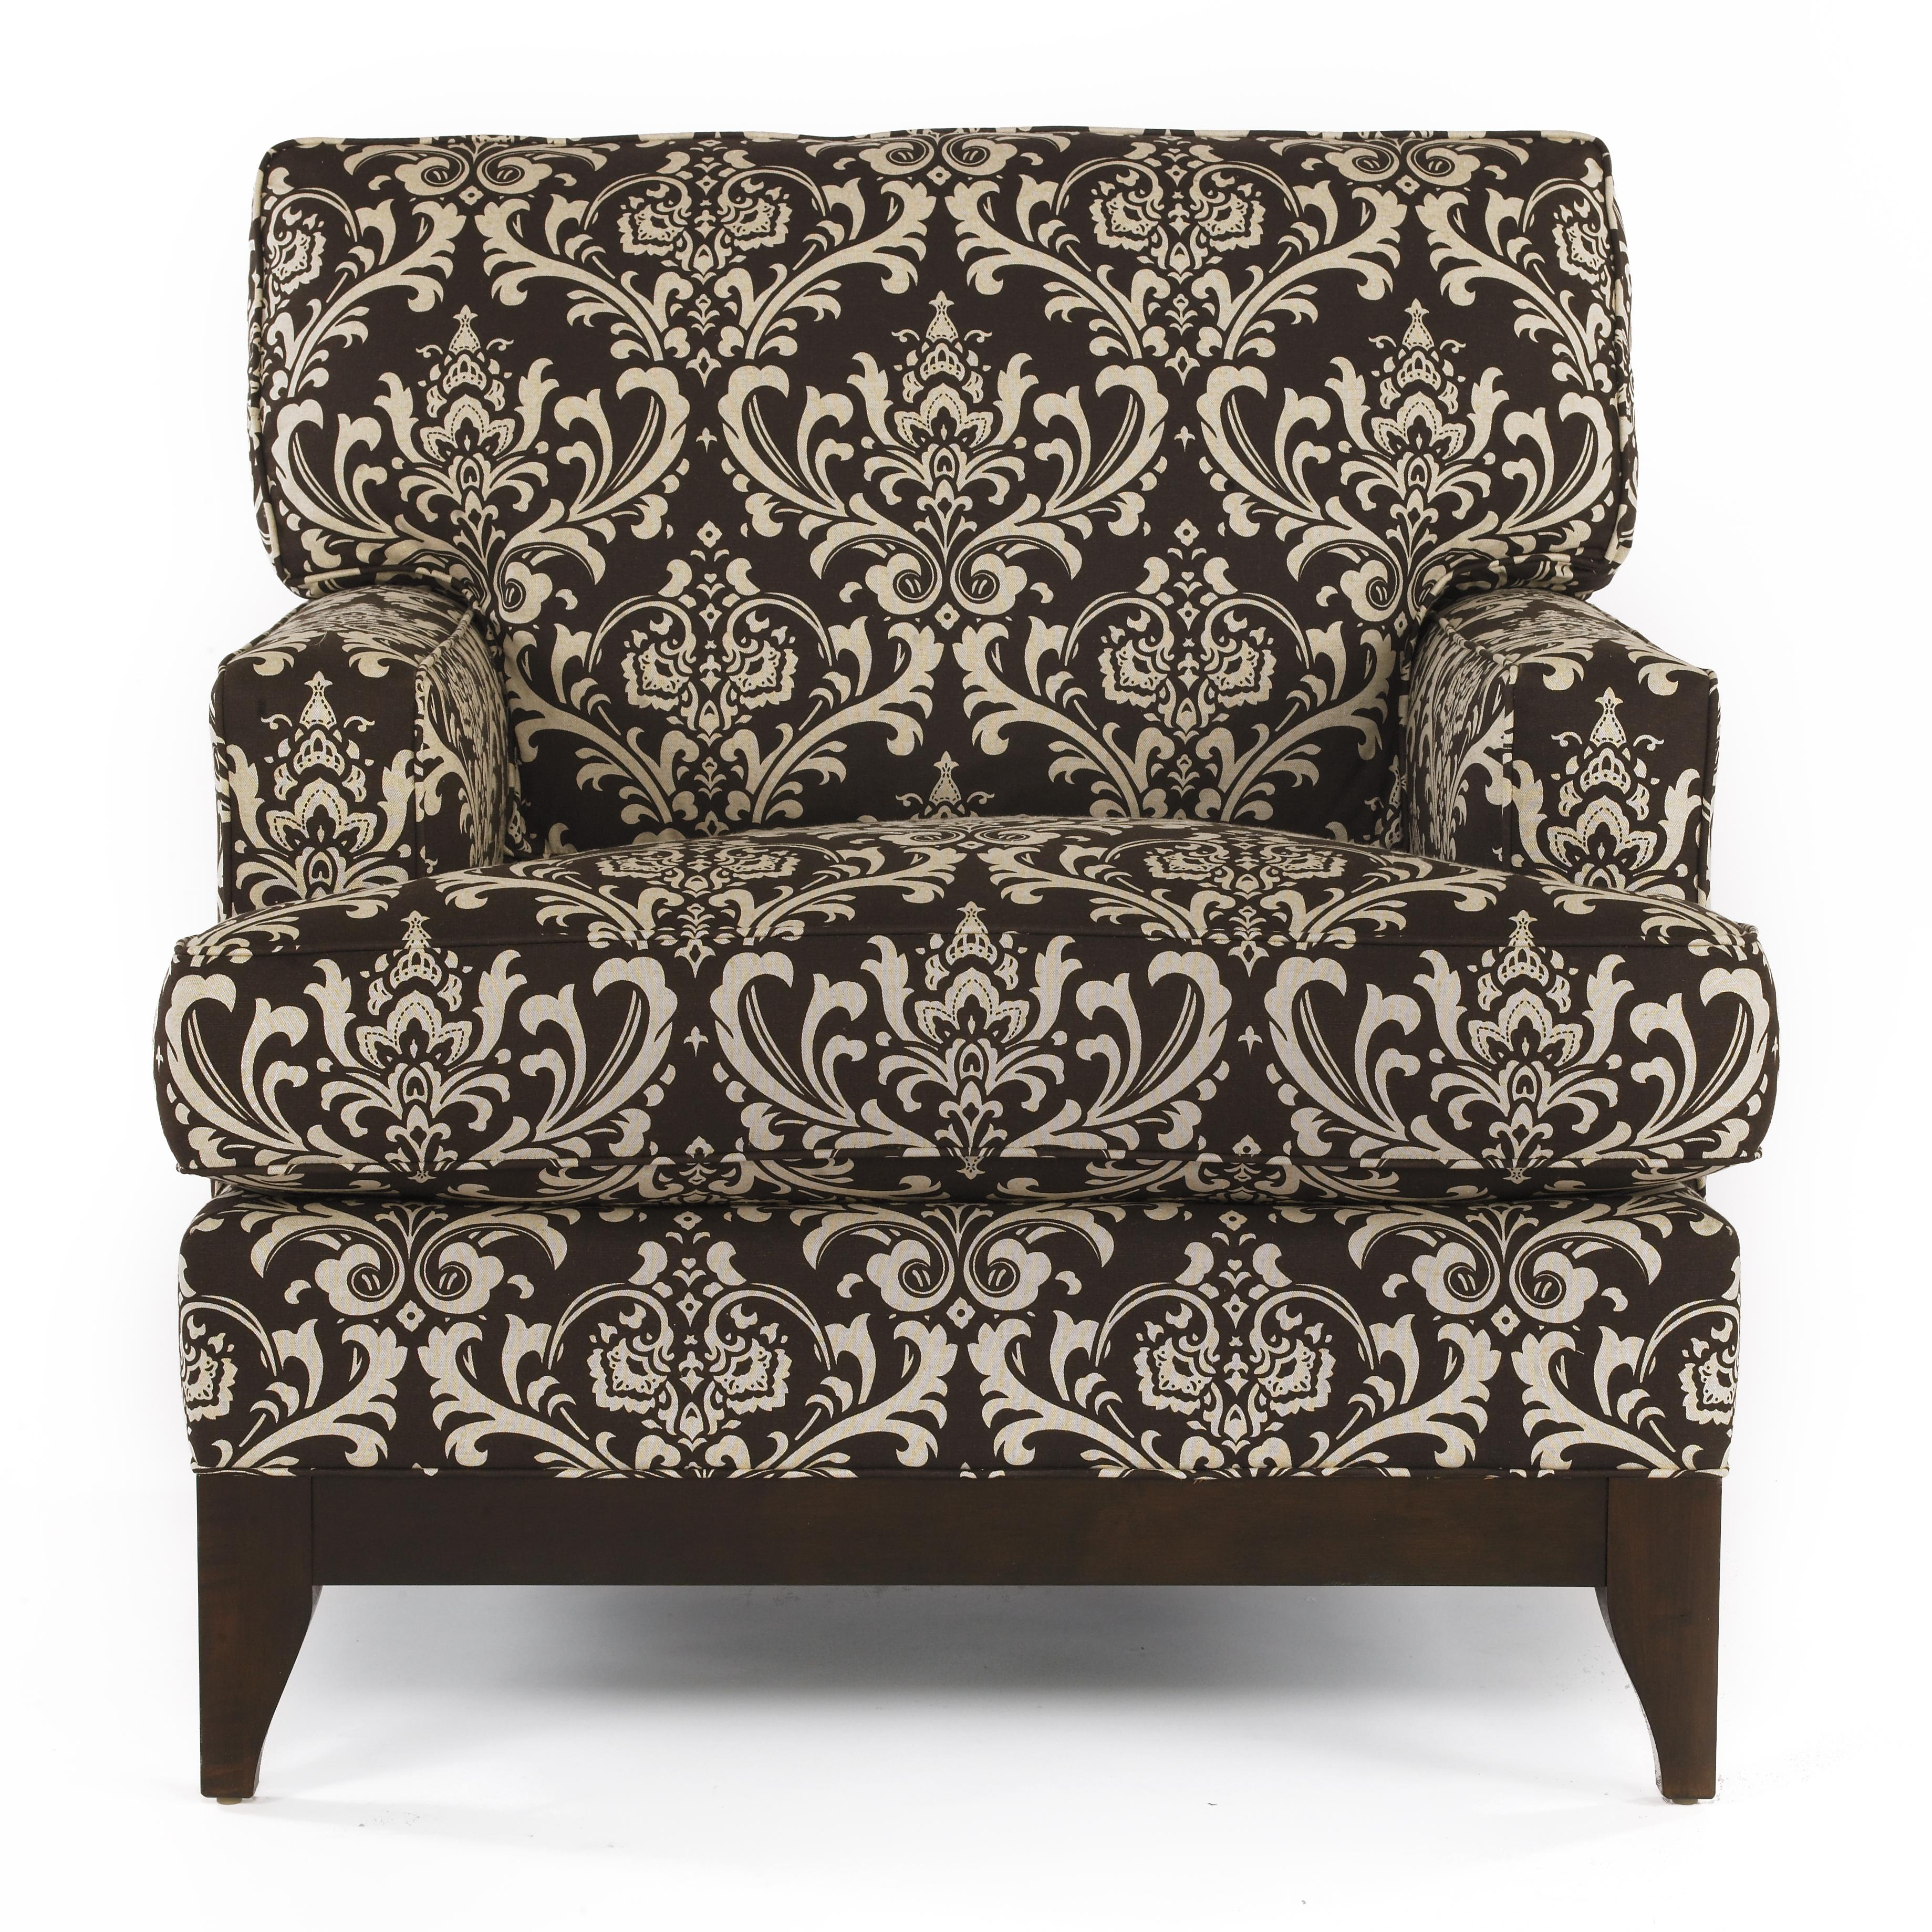 Alston Upholstered Chair by Kincaid Furniture at Johnny Janosik